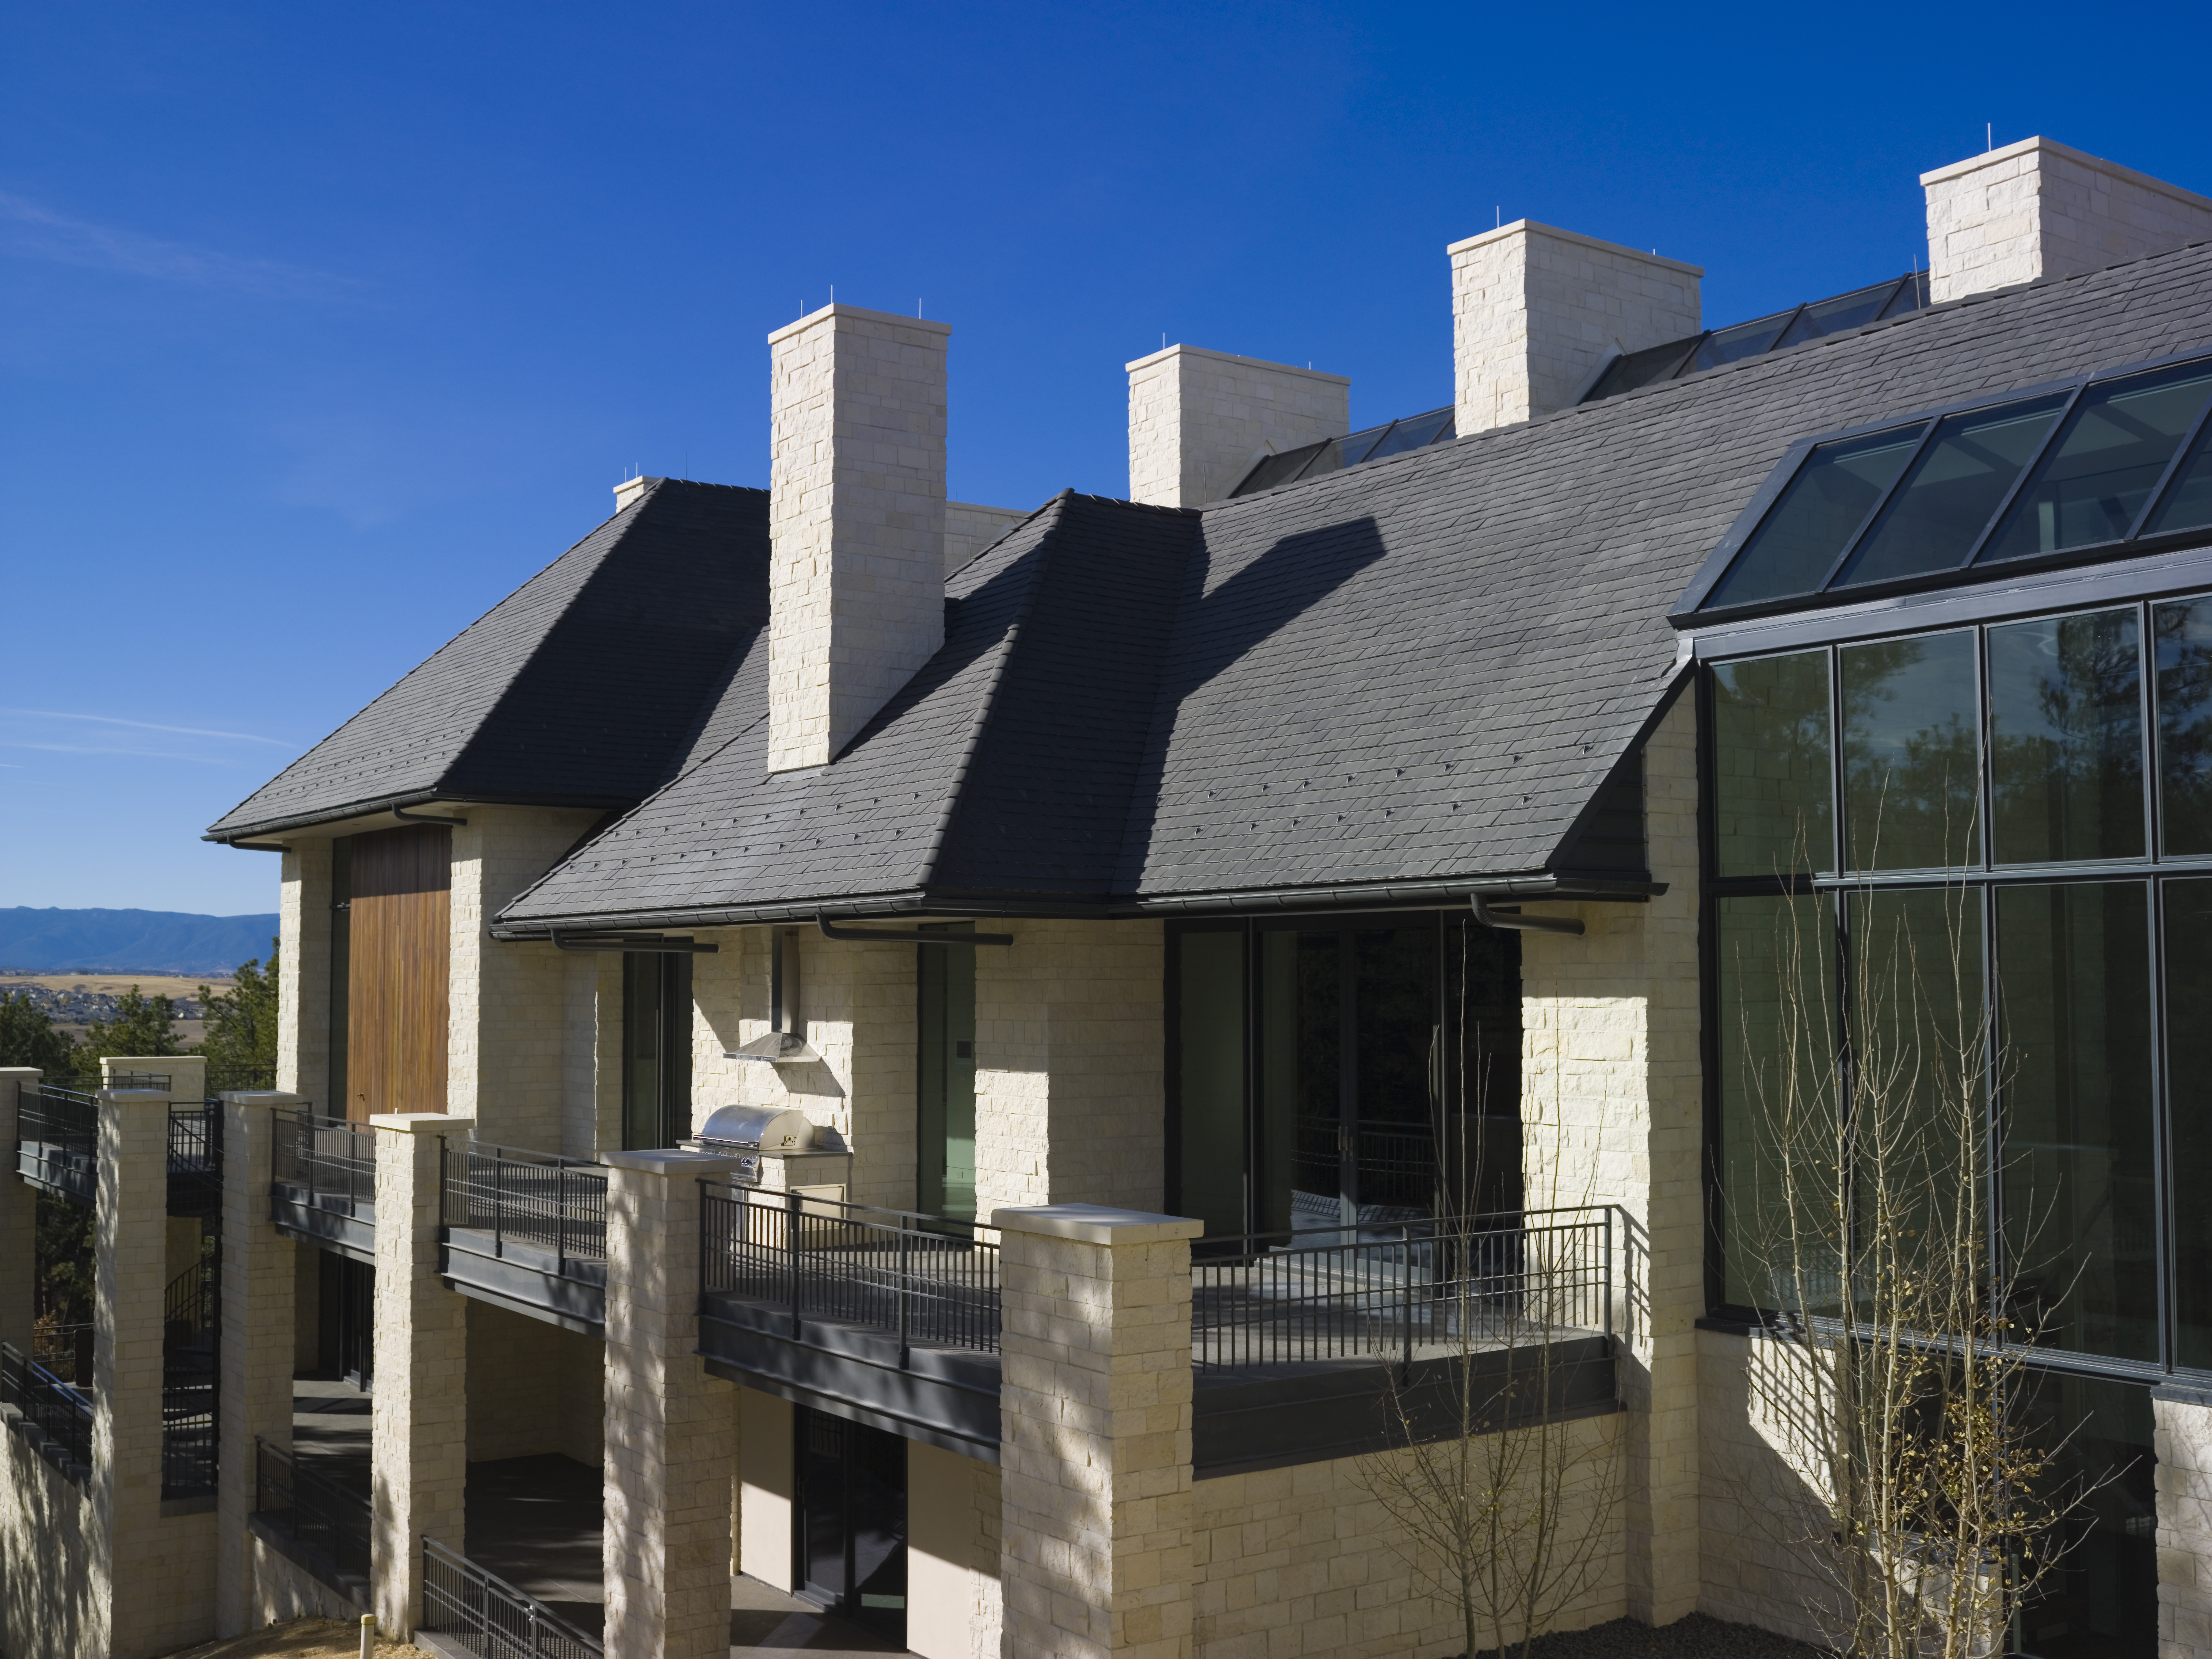 Residence in Castle Pines Colorado